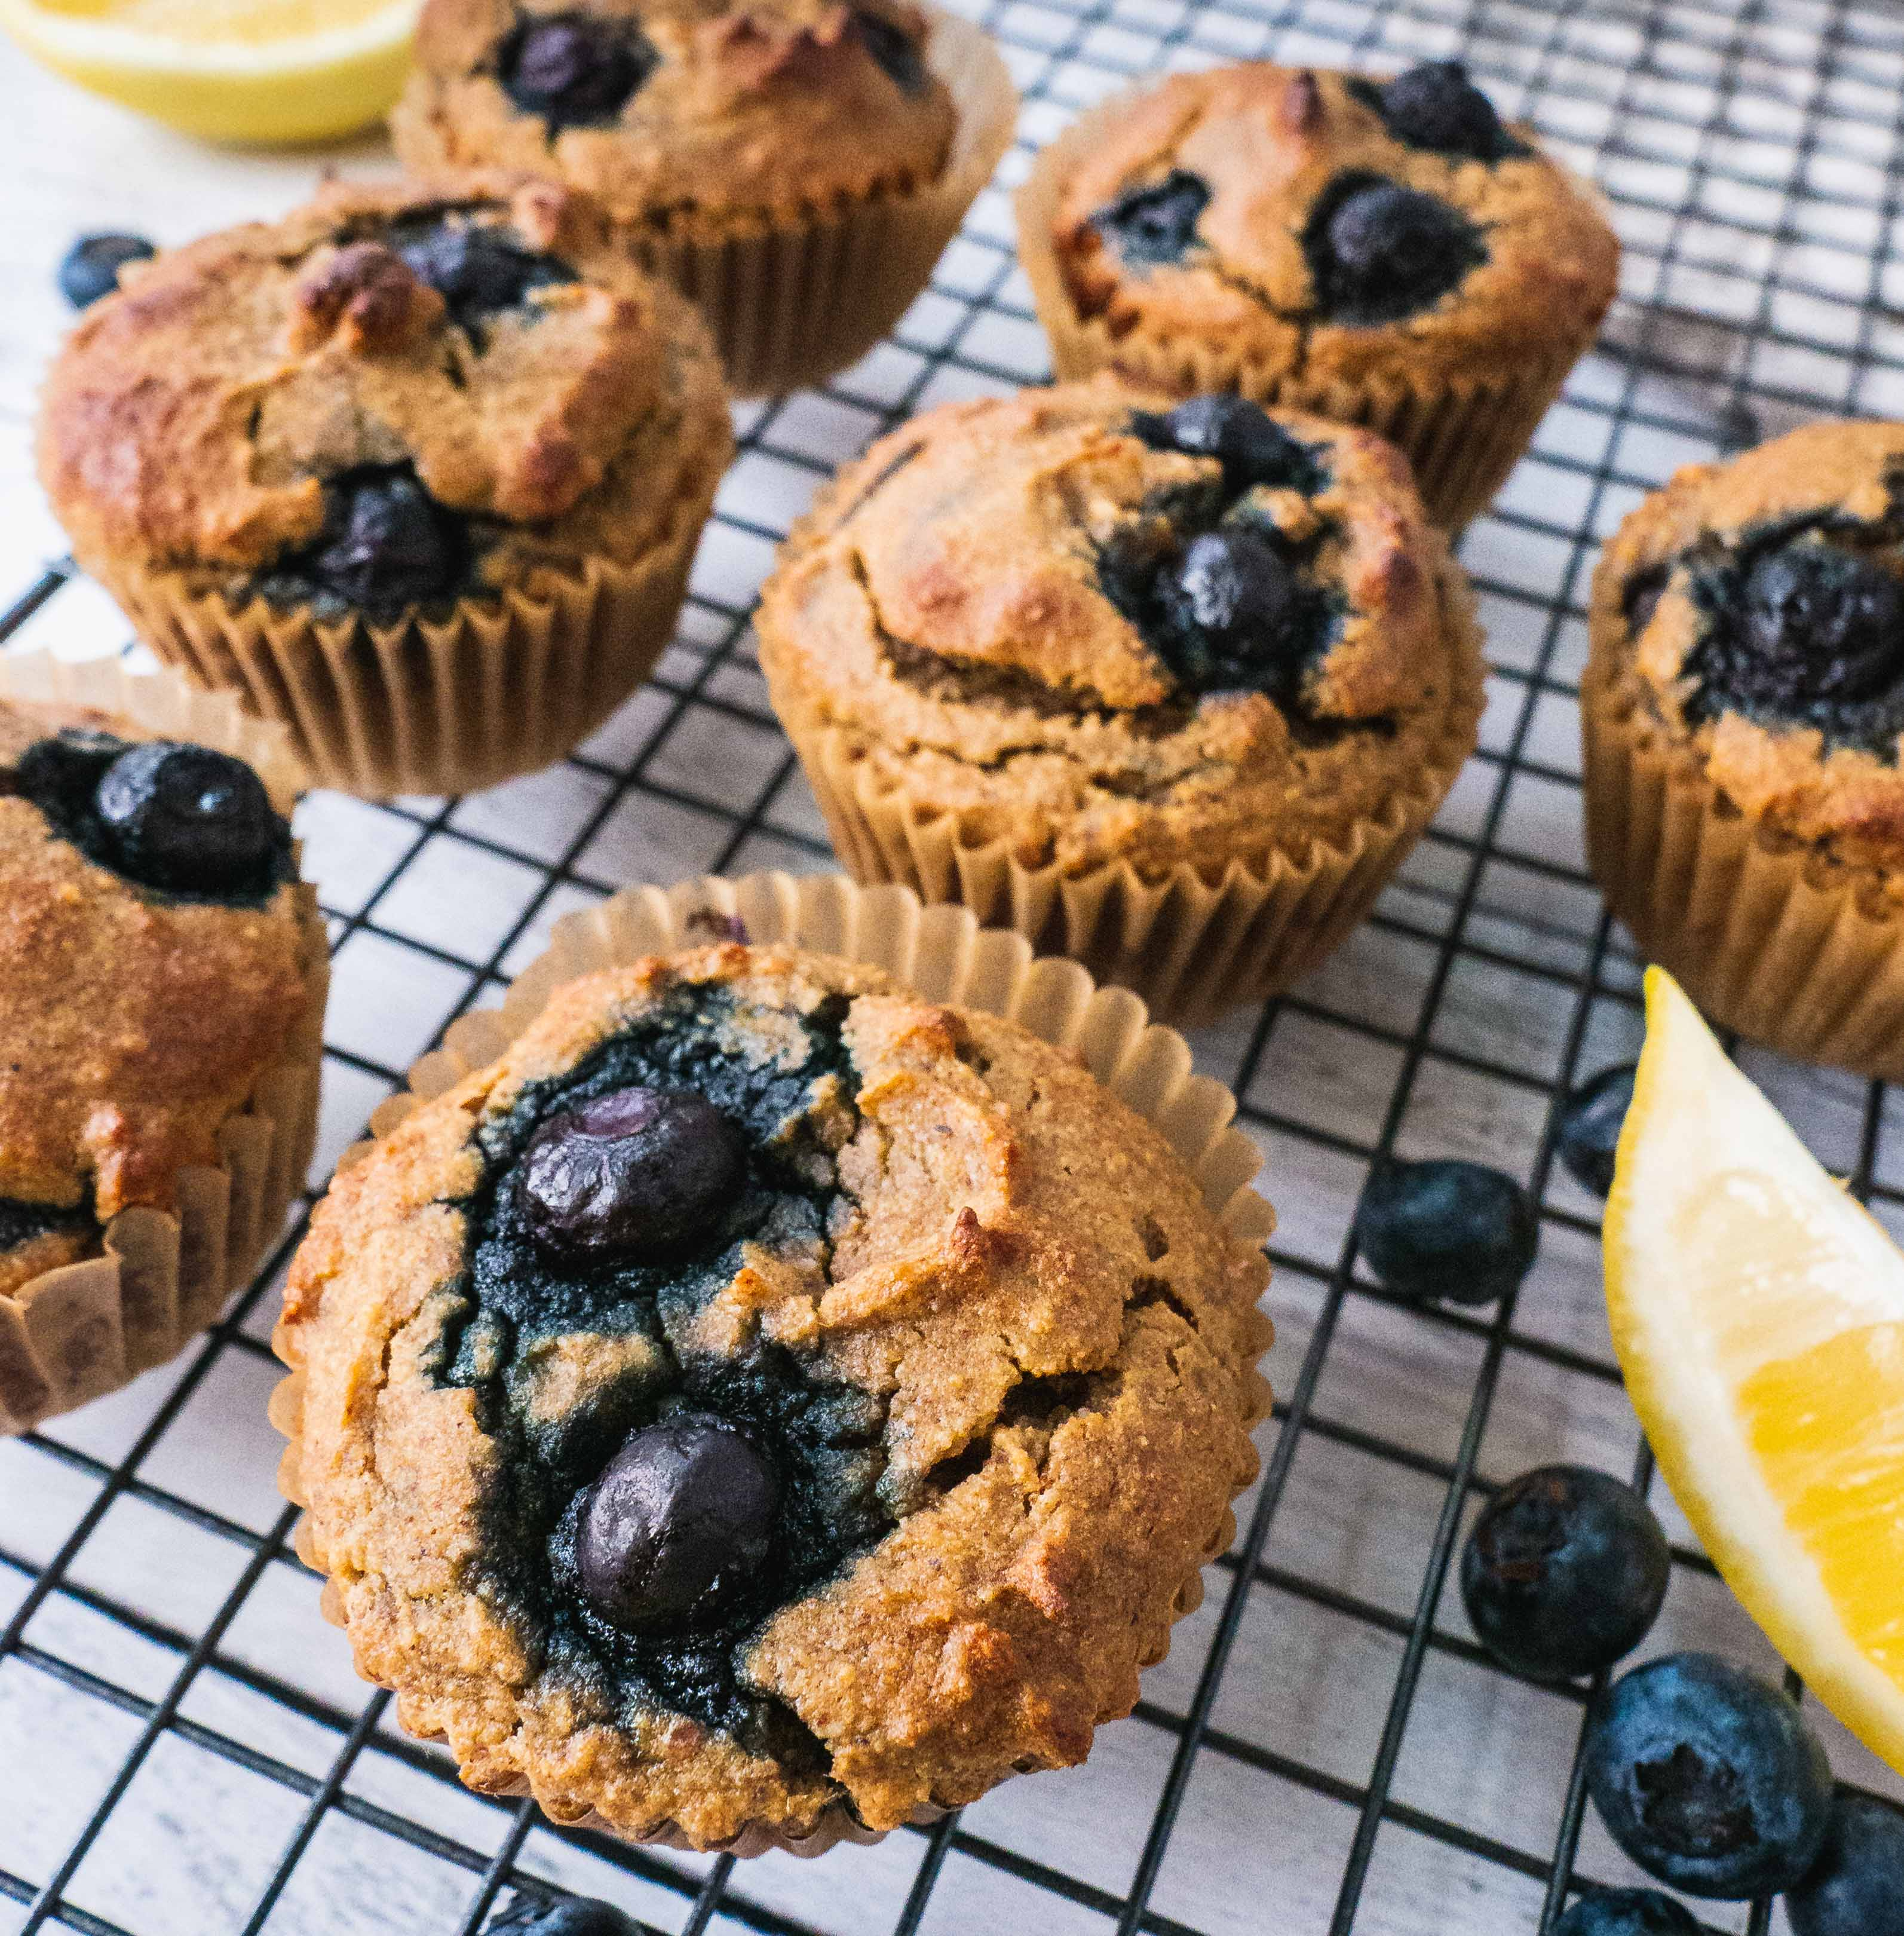 These Healthy Blueberry Lemon Muffins are the best breakfast option to make ahead, grab on the go for a busy morning. This easy muffin recipe is not only paleo, gluten free, but also has the most fluffy, soft and moist texture. Healthy blueberry lemon muffins for a family to enjoy, even your little picky kids eaters. | #Shuangyskitchensink #blueberrymuffin #muffinrecipe #paleo #healthybreakfast #breakfastmuffins #blueberrylemon #glutenfree #glutenfreerecipe